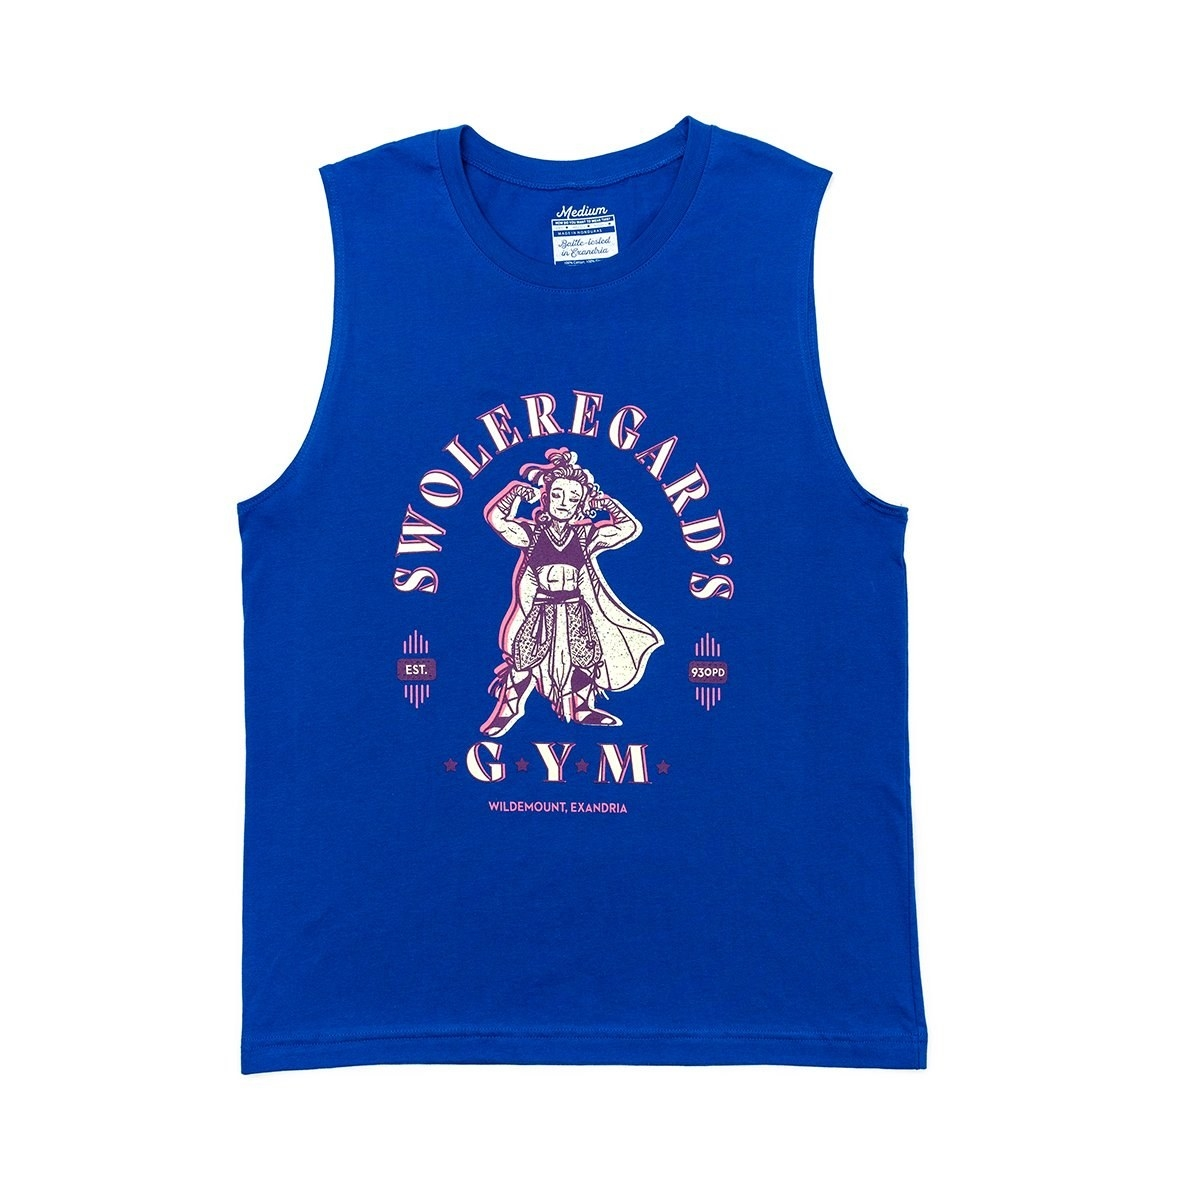 """a blue muscle tank with a muscular character on it and """"swoleregard's gym"""" on it"""